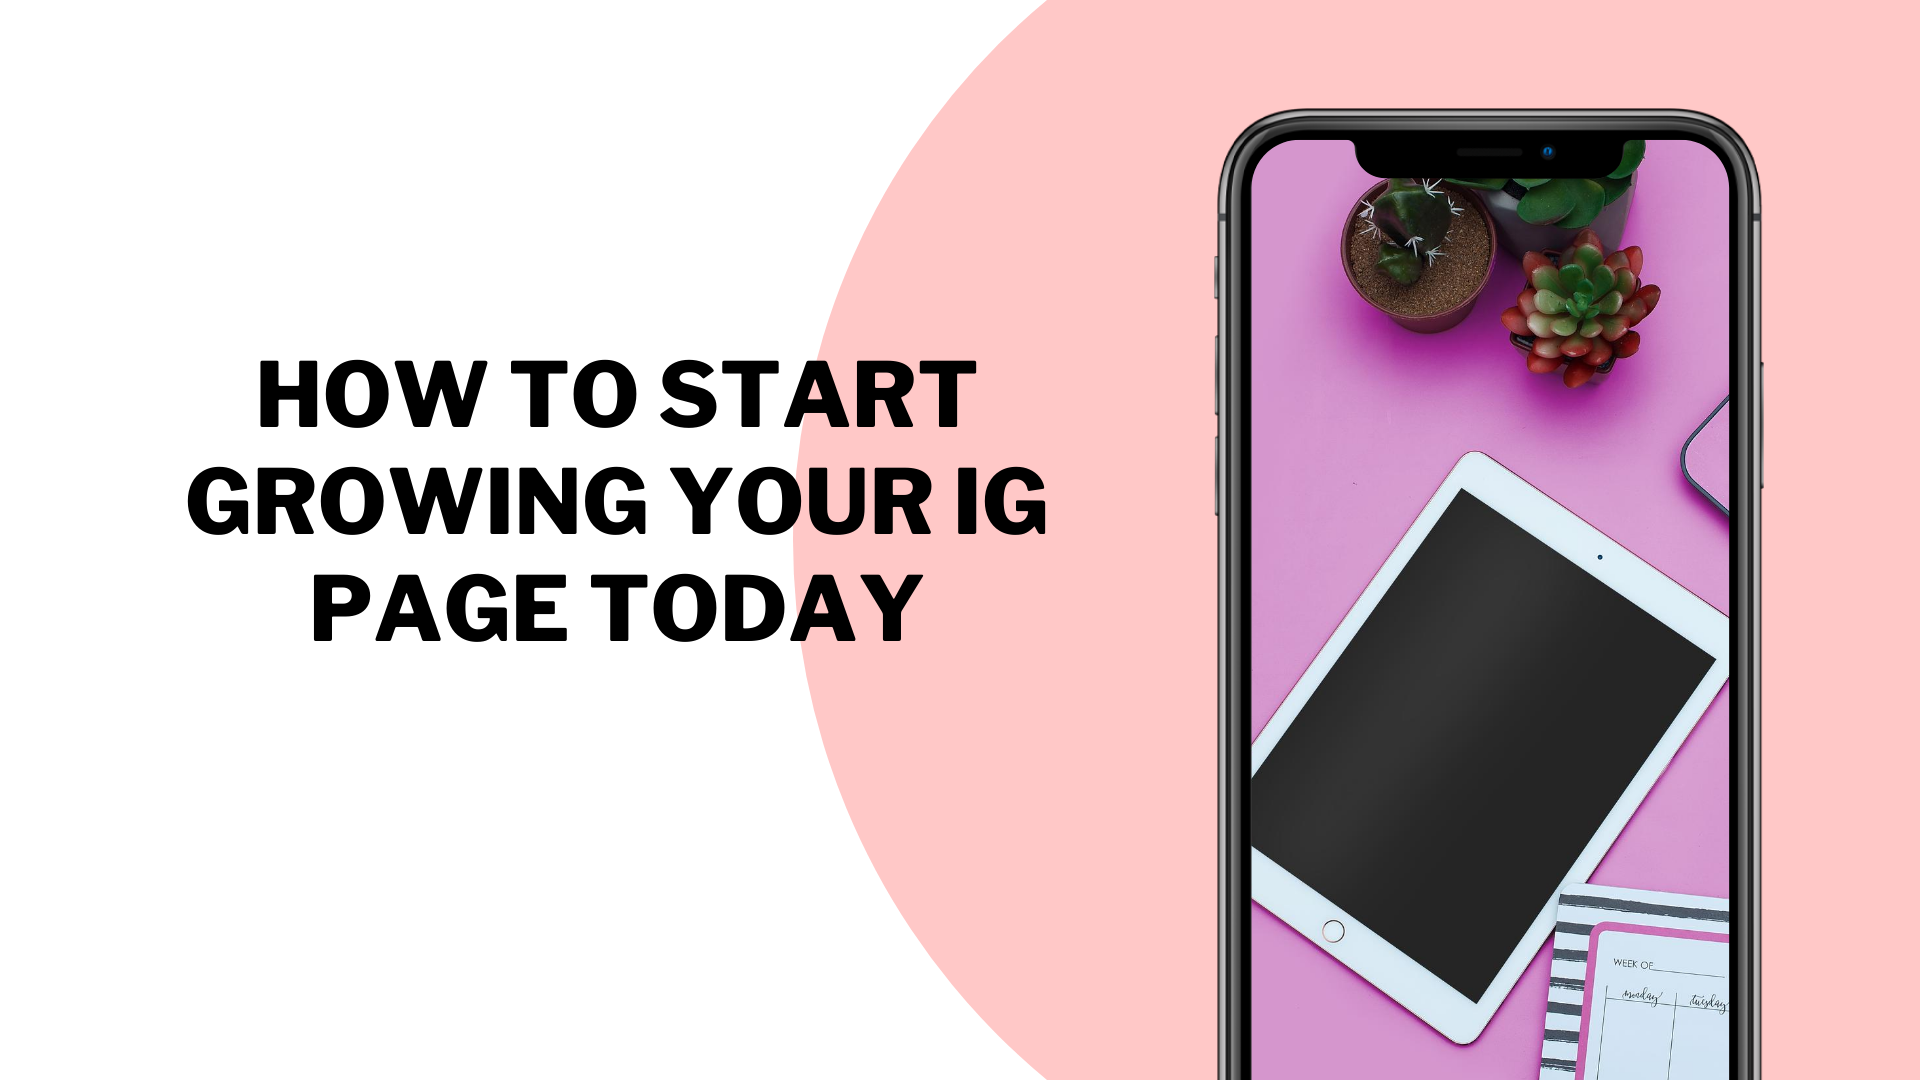 How To Start Growing Your IG Page Today